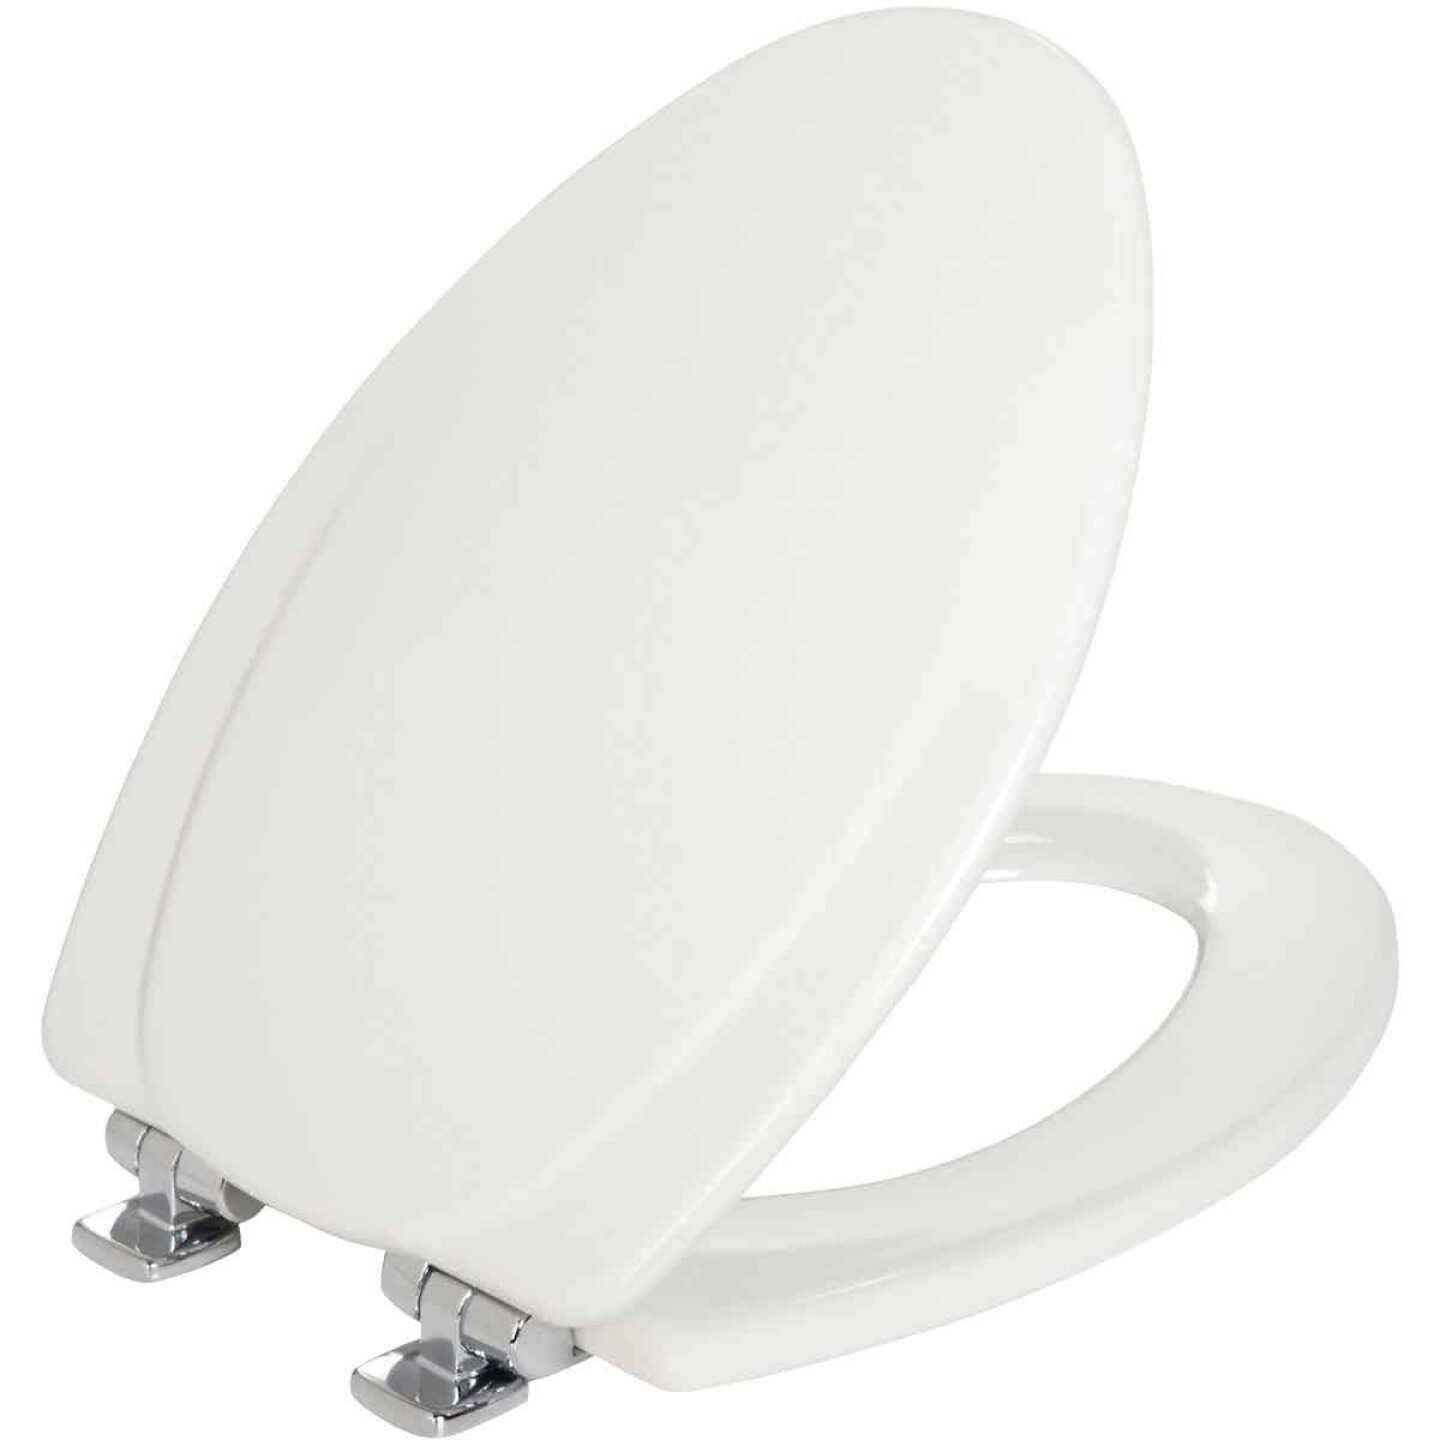 Mayfair Elongated Closed Front Slow-Close White Wood Toilet Seat Image 1